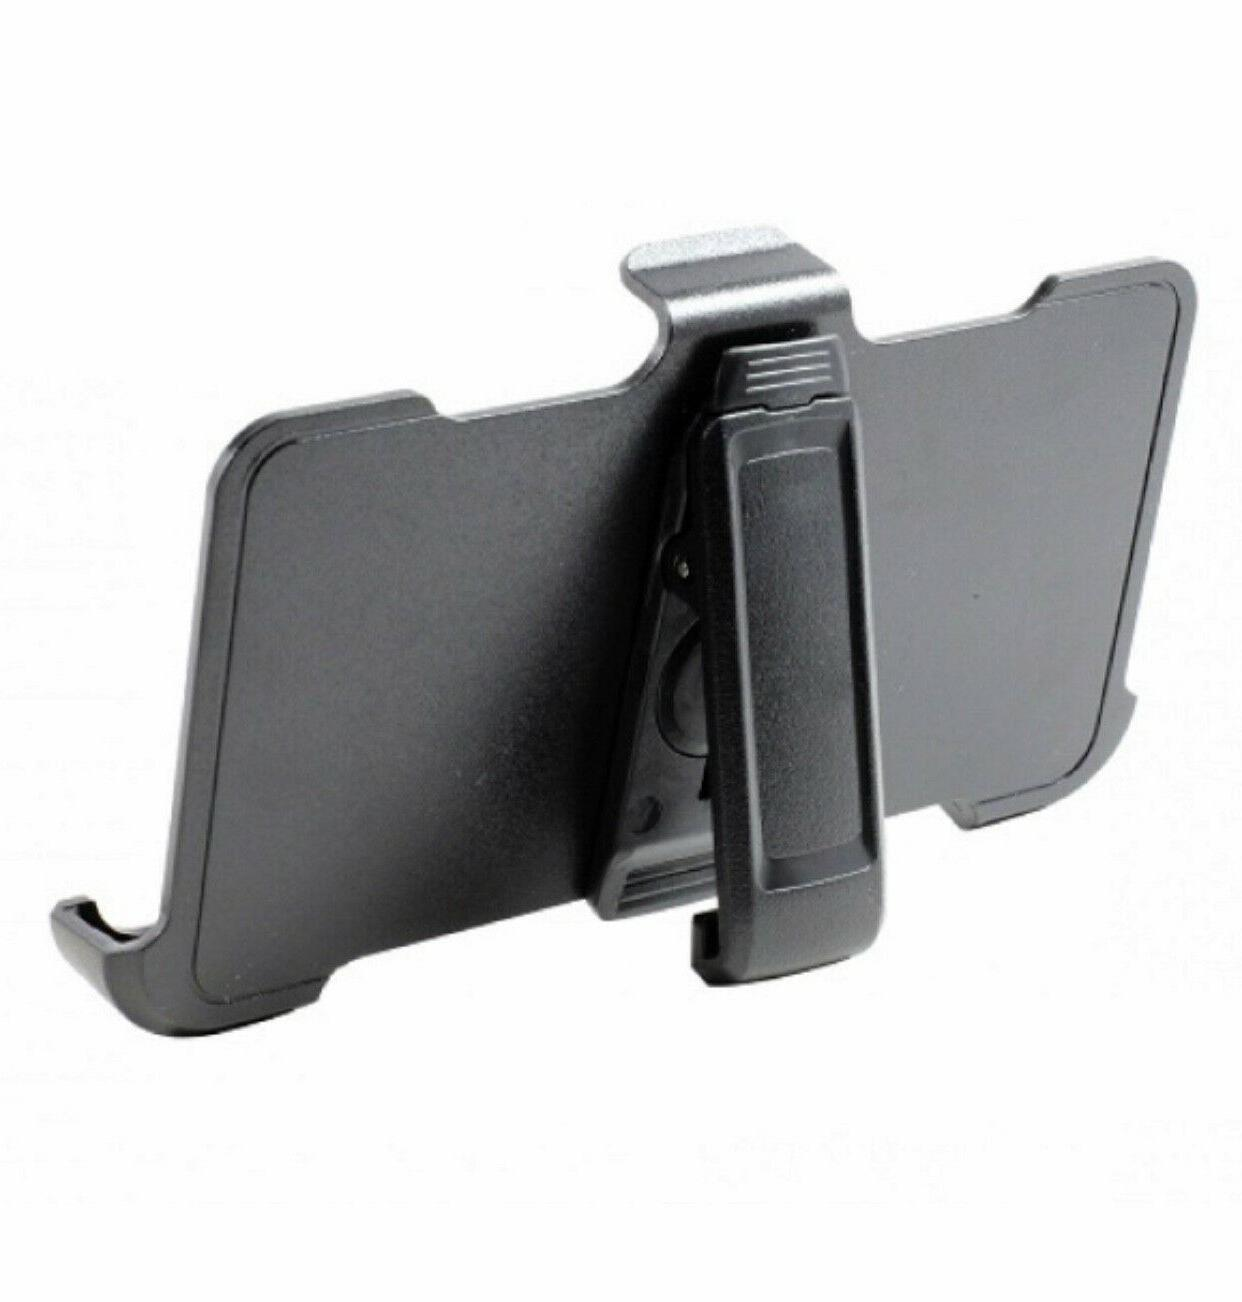 3-Pack Replacement Holster Cell Phone Otterbox Defender Case